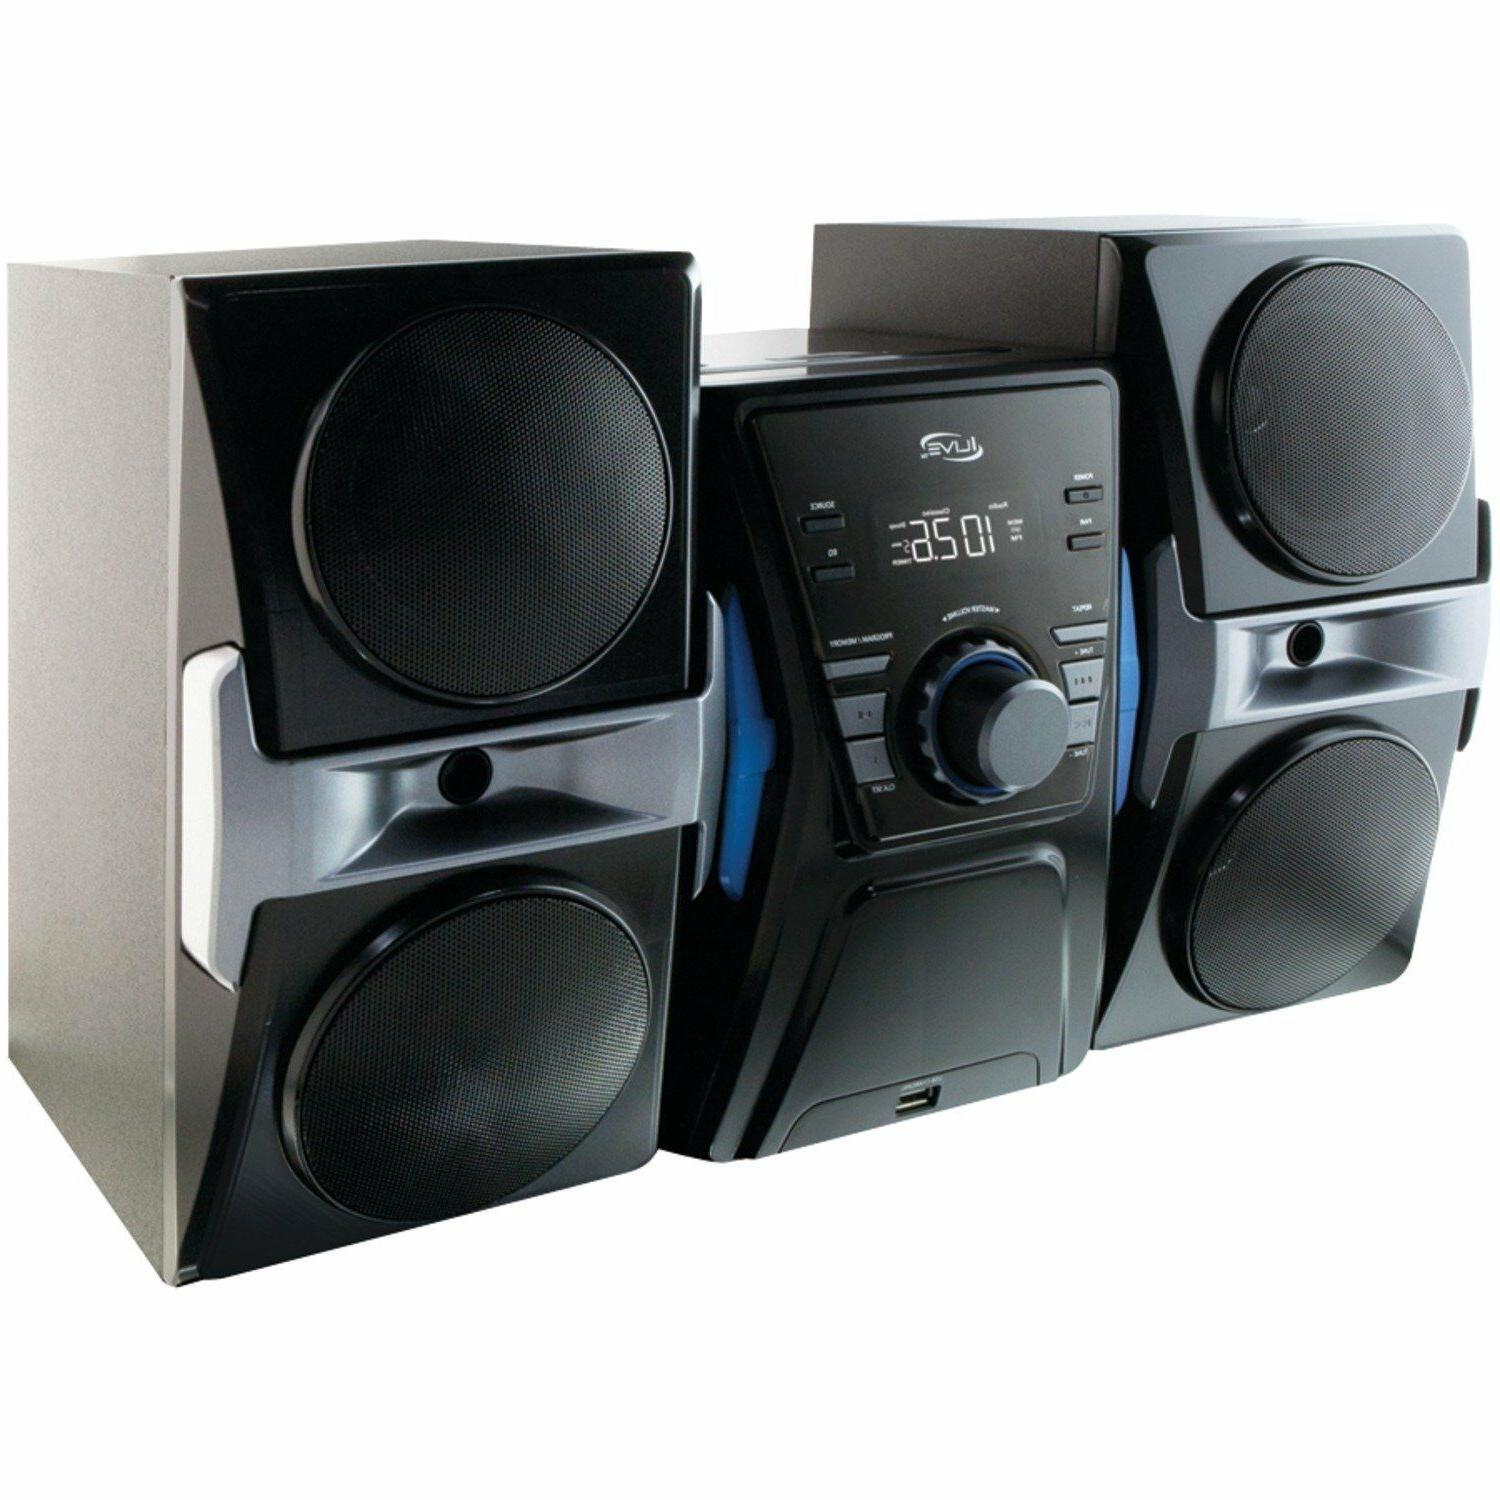 NEW Bluetooth Compact CD Shelf Stereo Speaker Music System.F